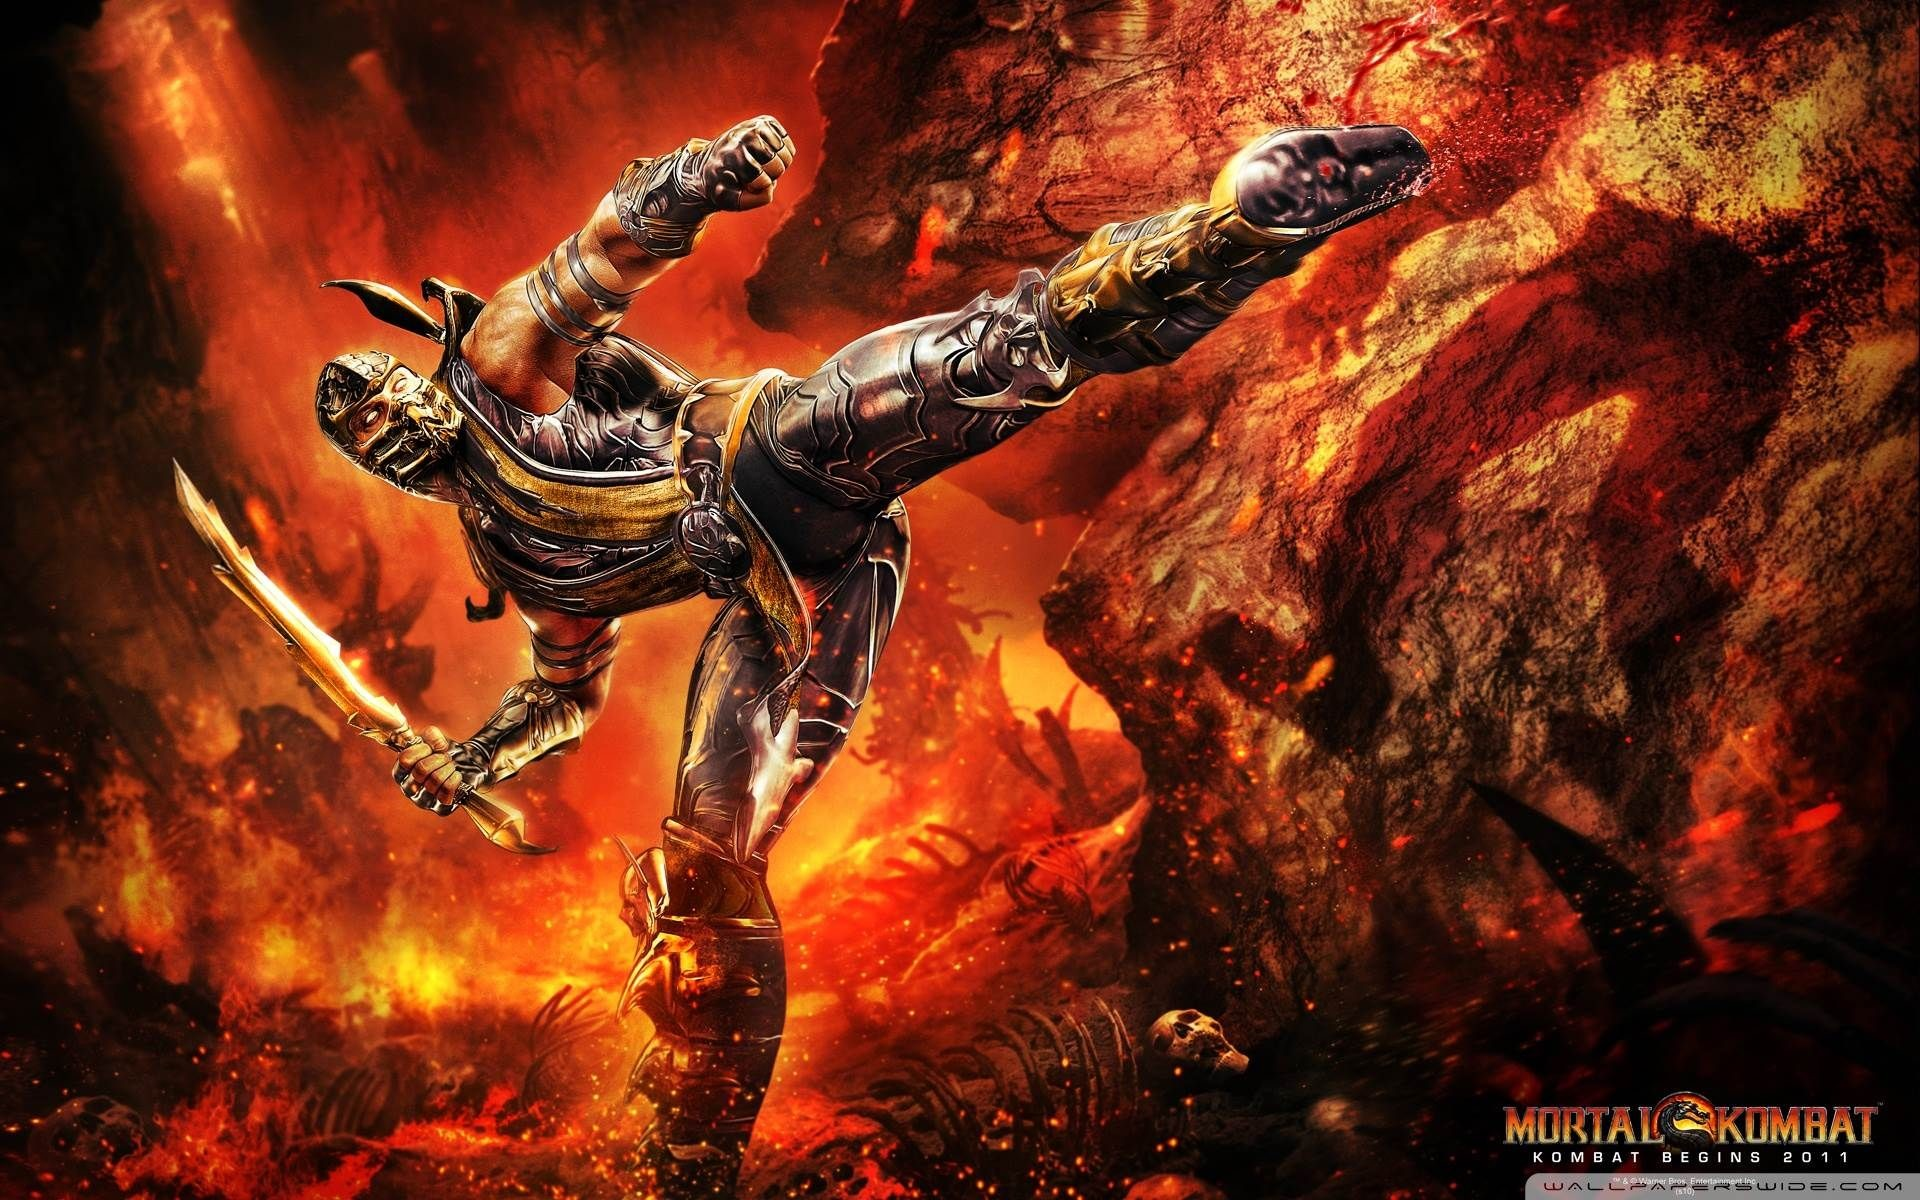 1920x1200 Mortal Kombat Logo Wallpapers HD Wallpapers 1920×1200 Imagenes De Mortal  Kombat | Adorable Wallpapers